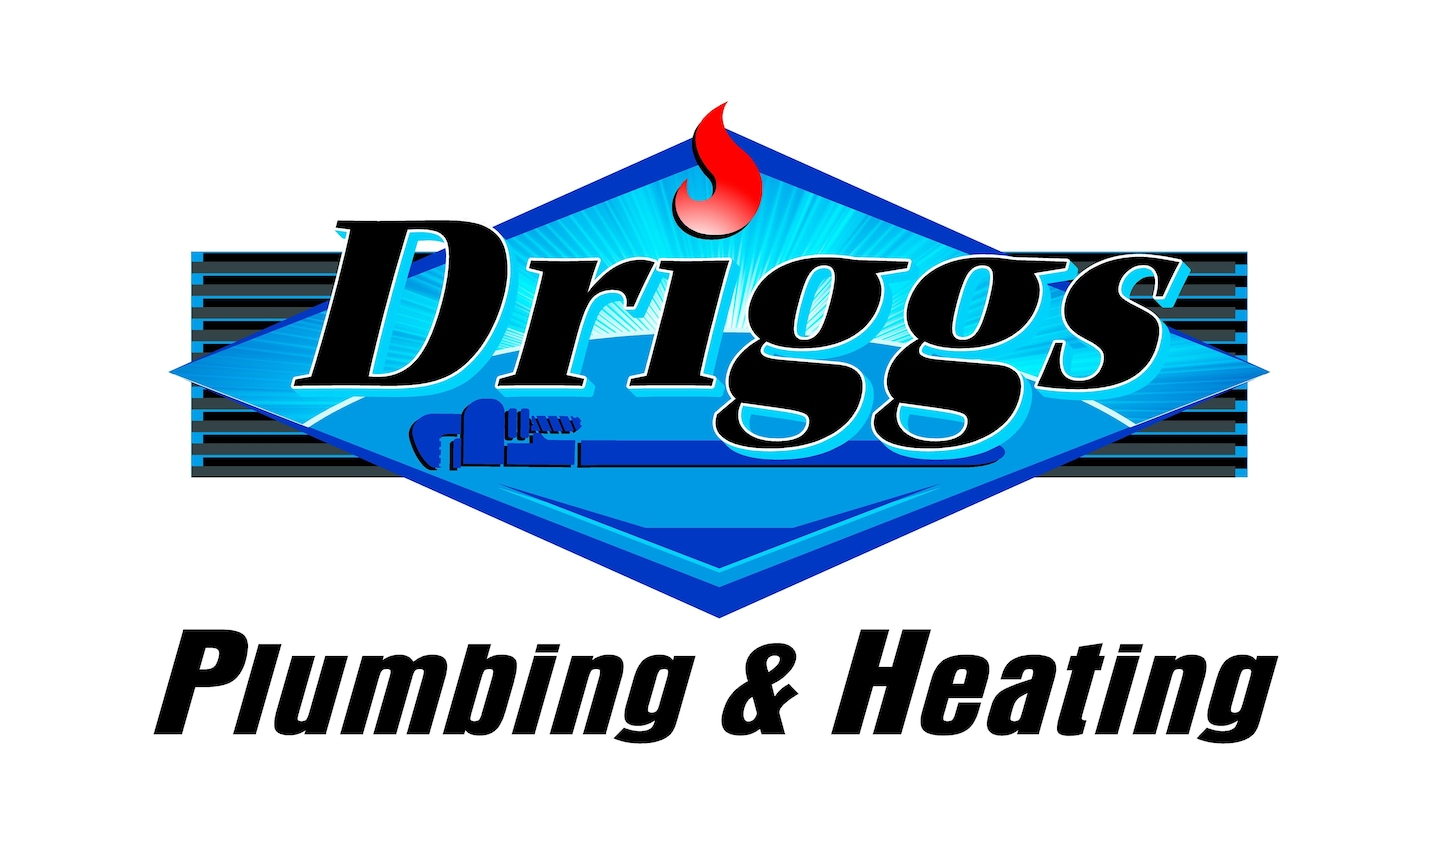 Driggs Plumbing and Heating